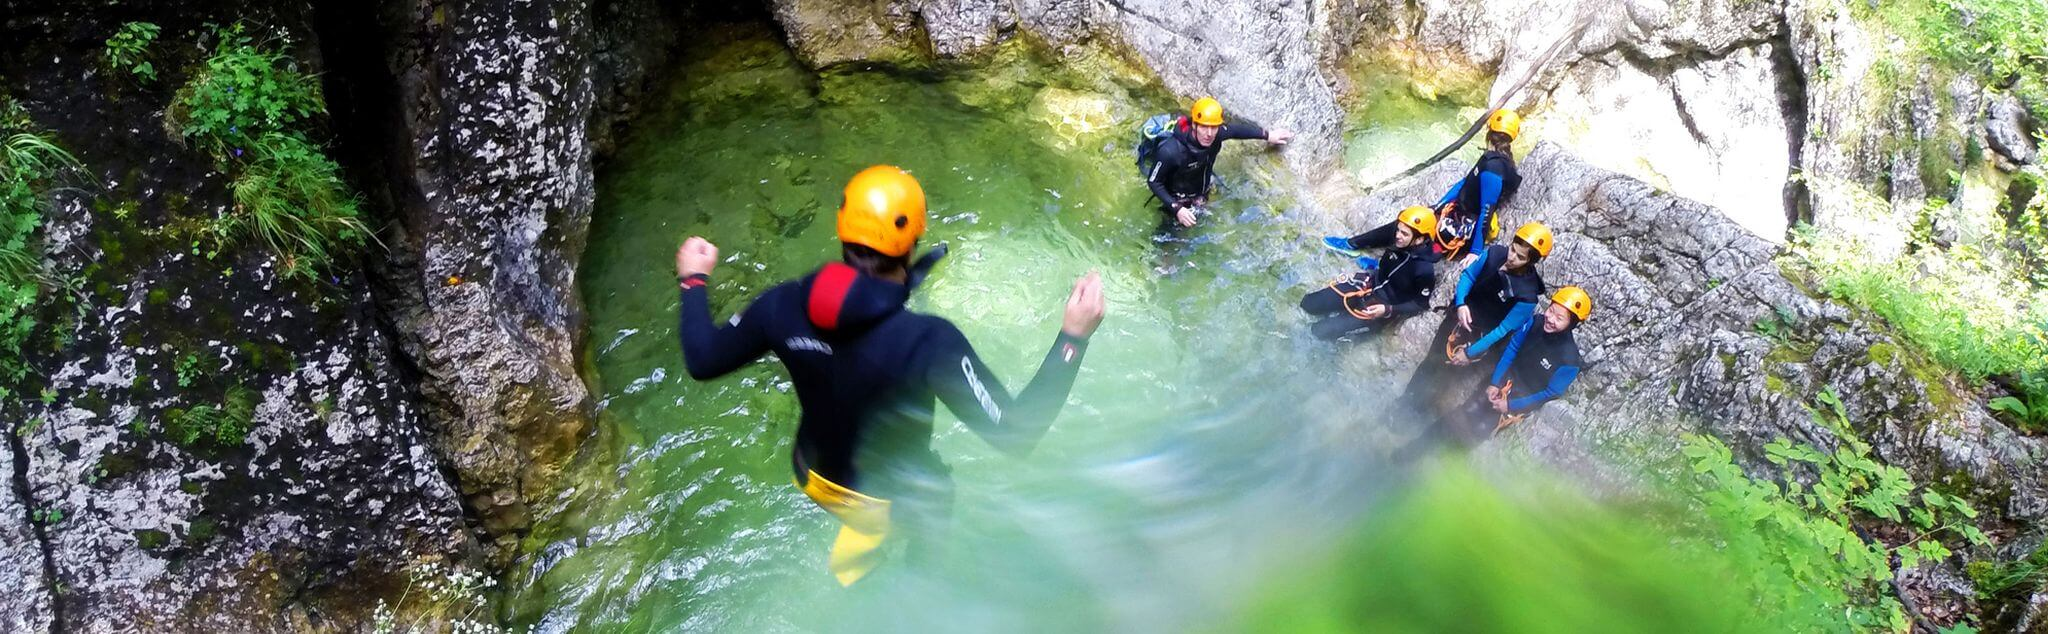 Canyoning in Carmarthenshire